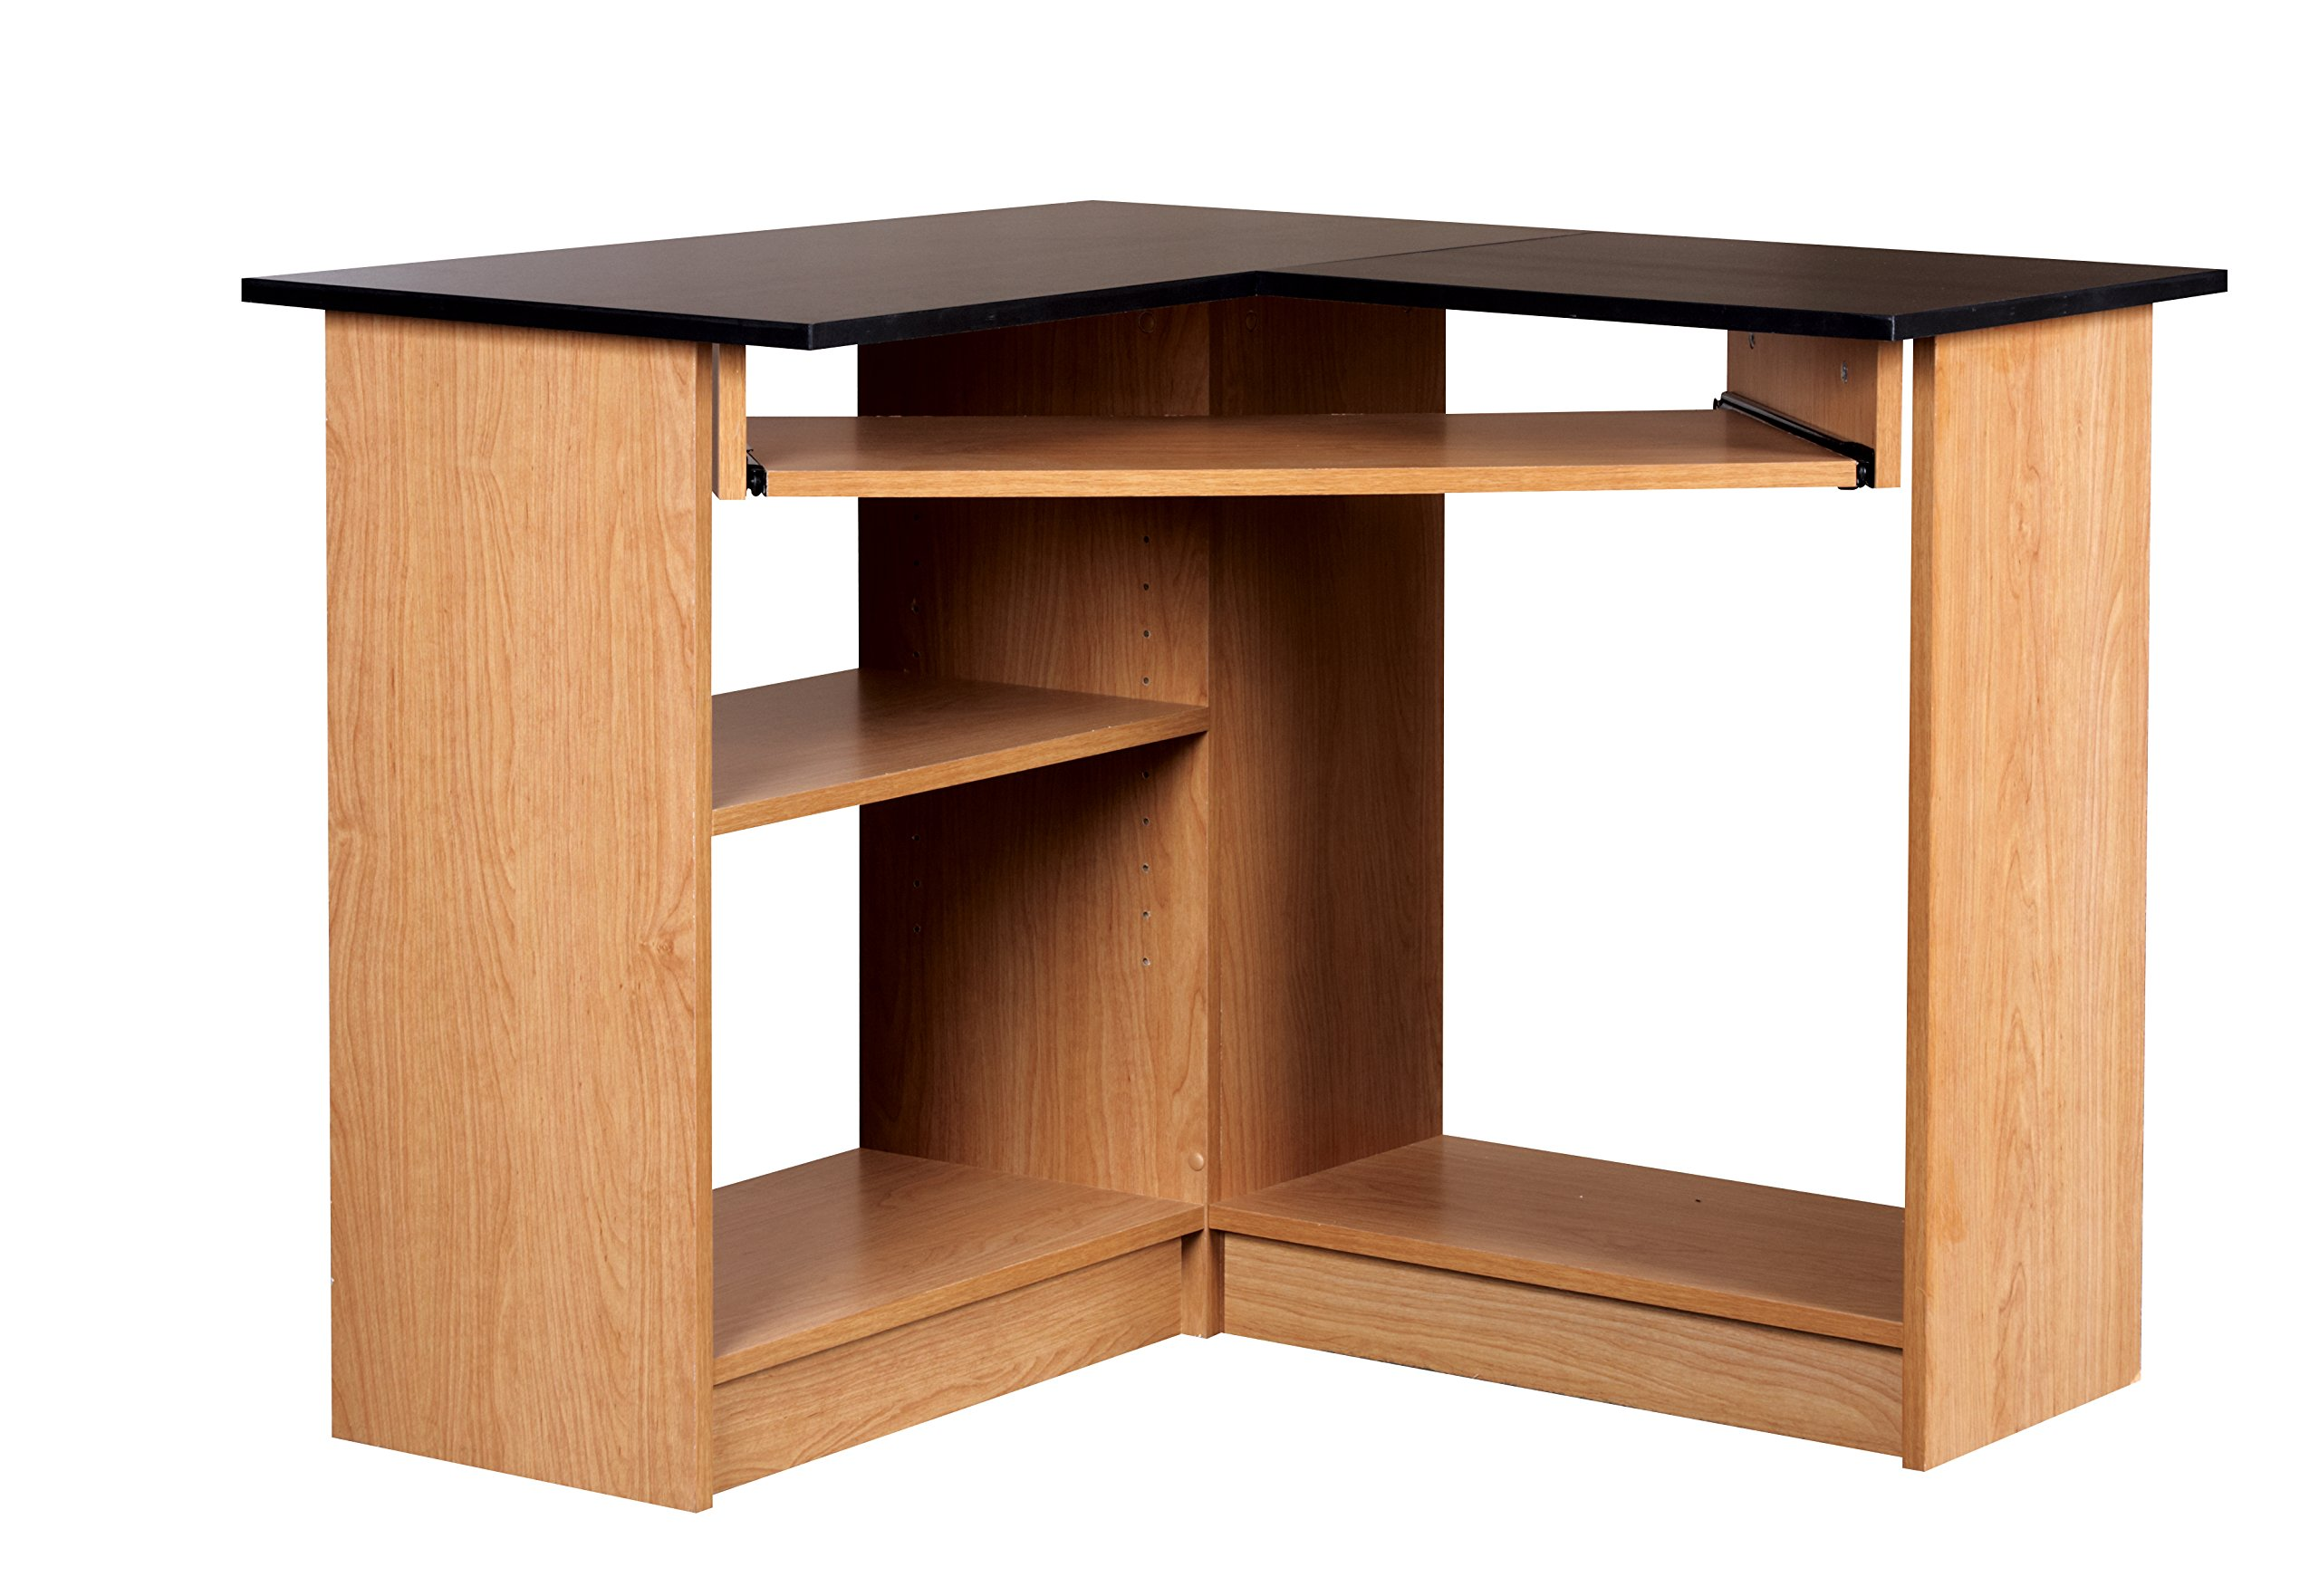 Mylex Corner Computer Workstation, 35.5 W x 35.5 D x 29 H Inches, Oak with Black Top, Assembly Required (43098)